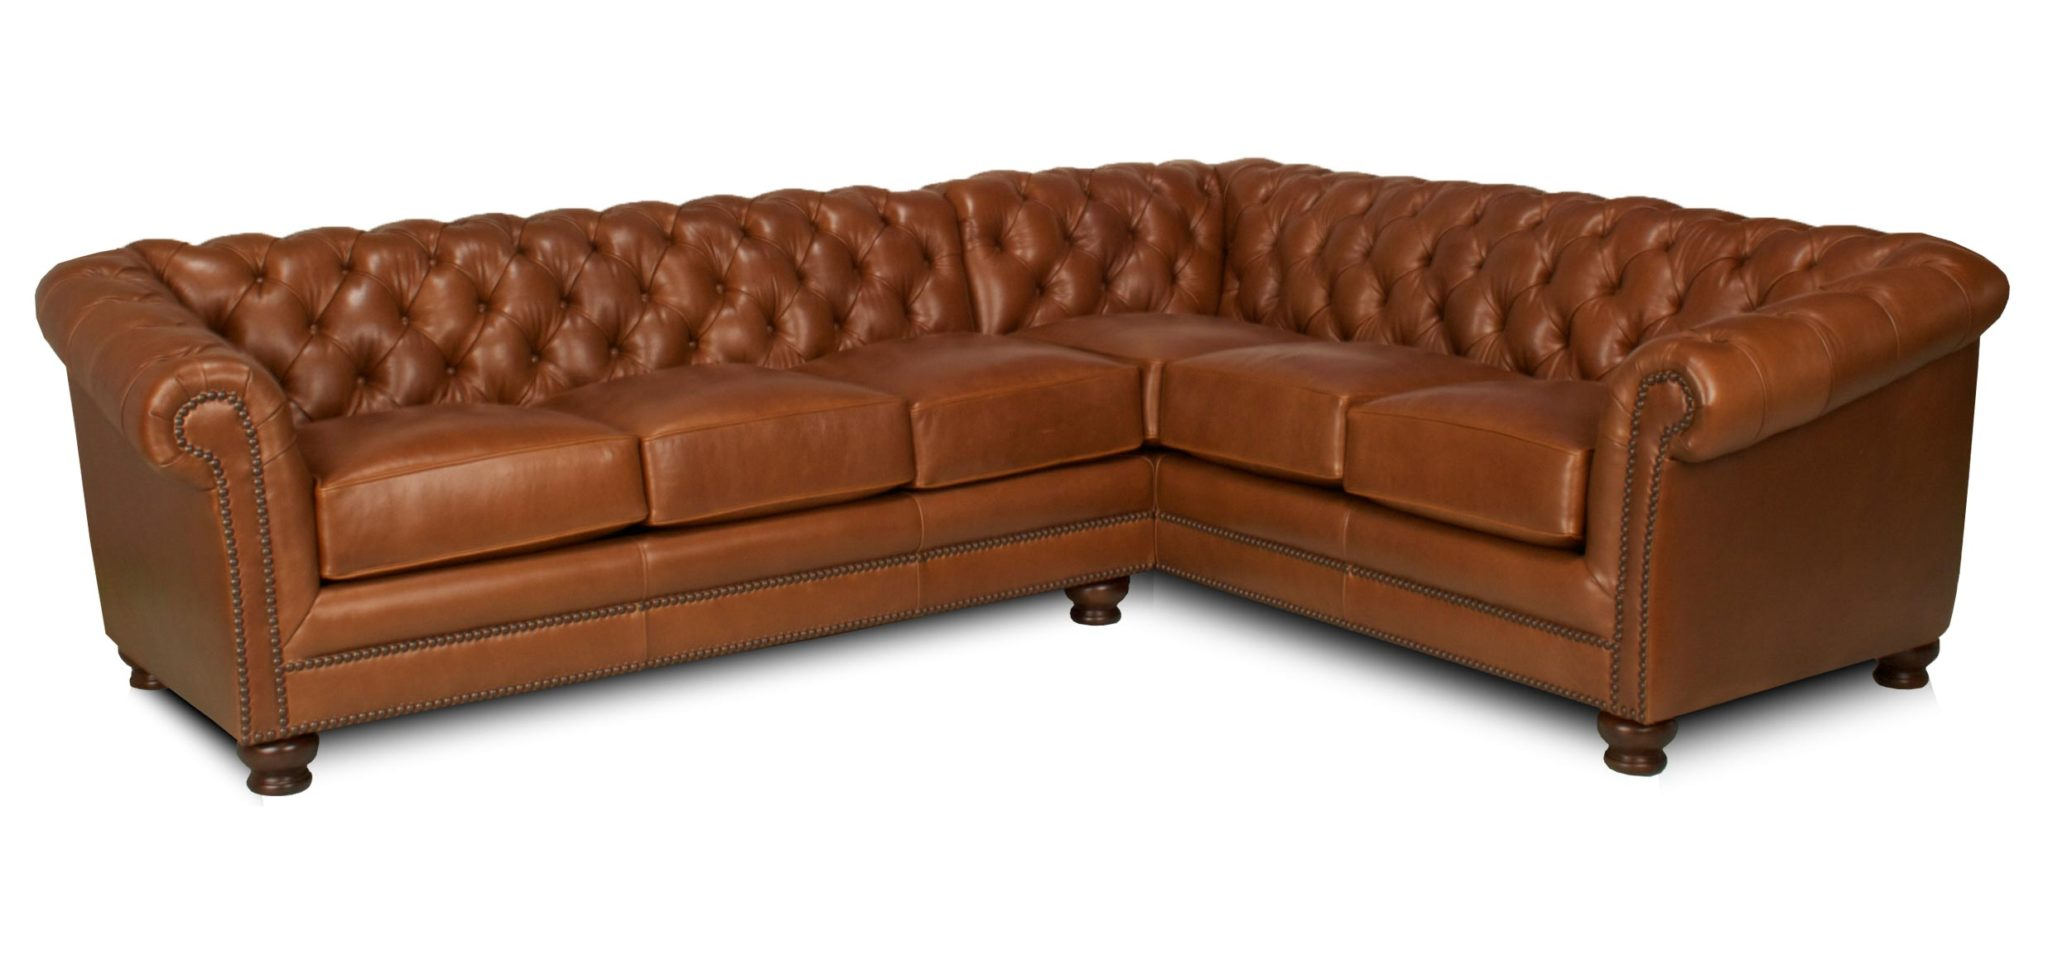 Chesterfield Sofa Chesterfield Leather Sectional